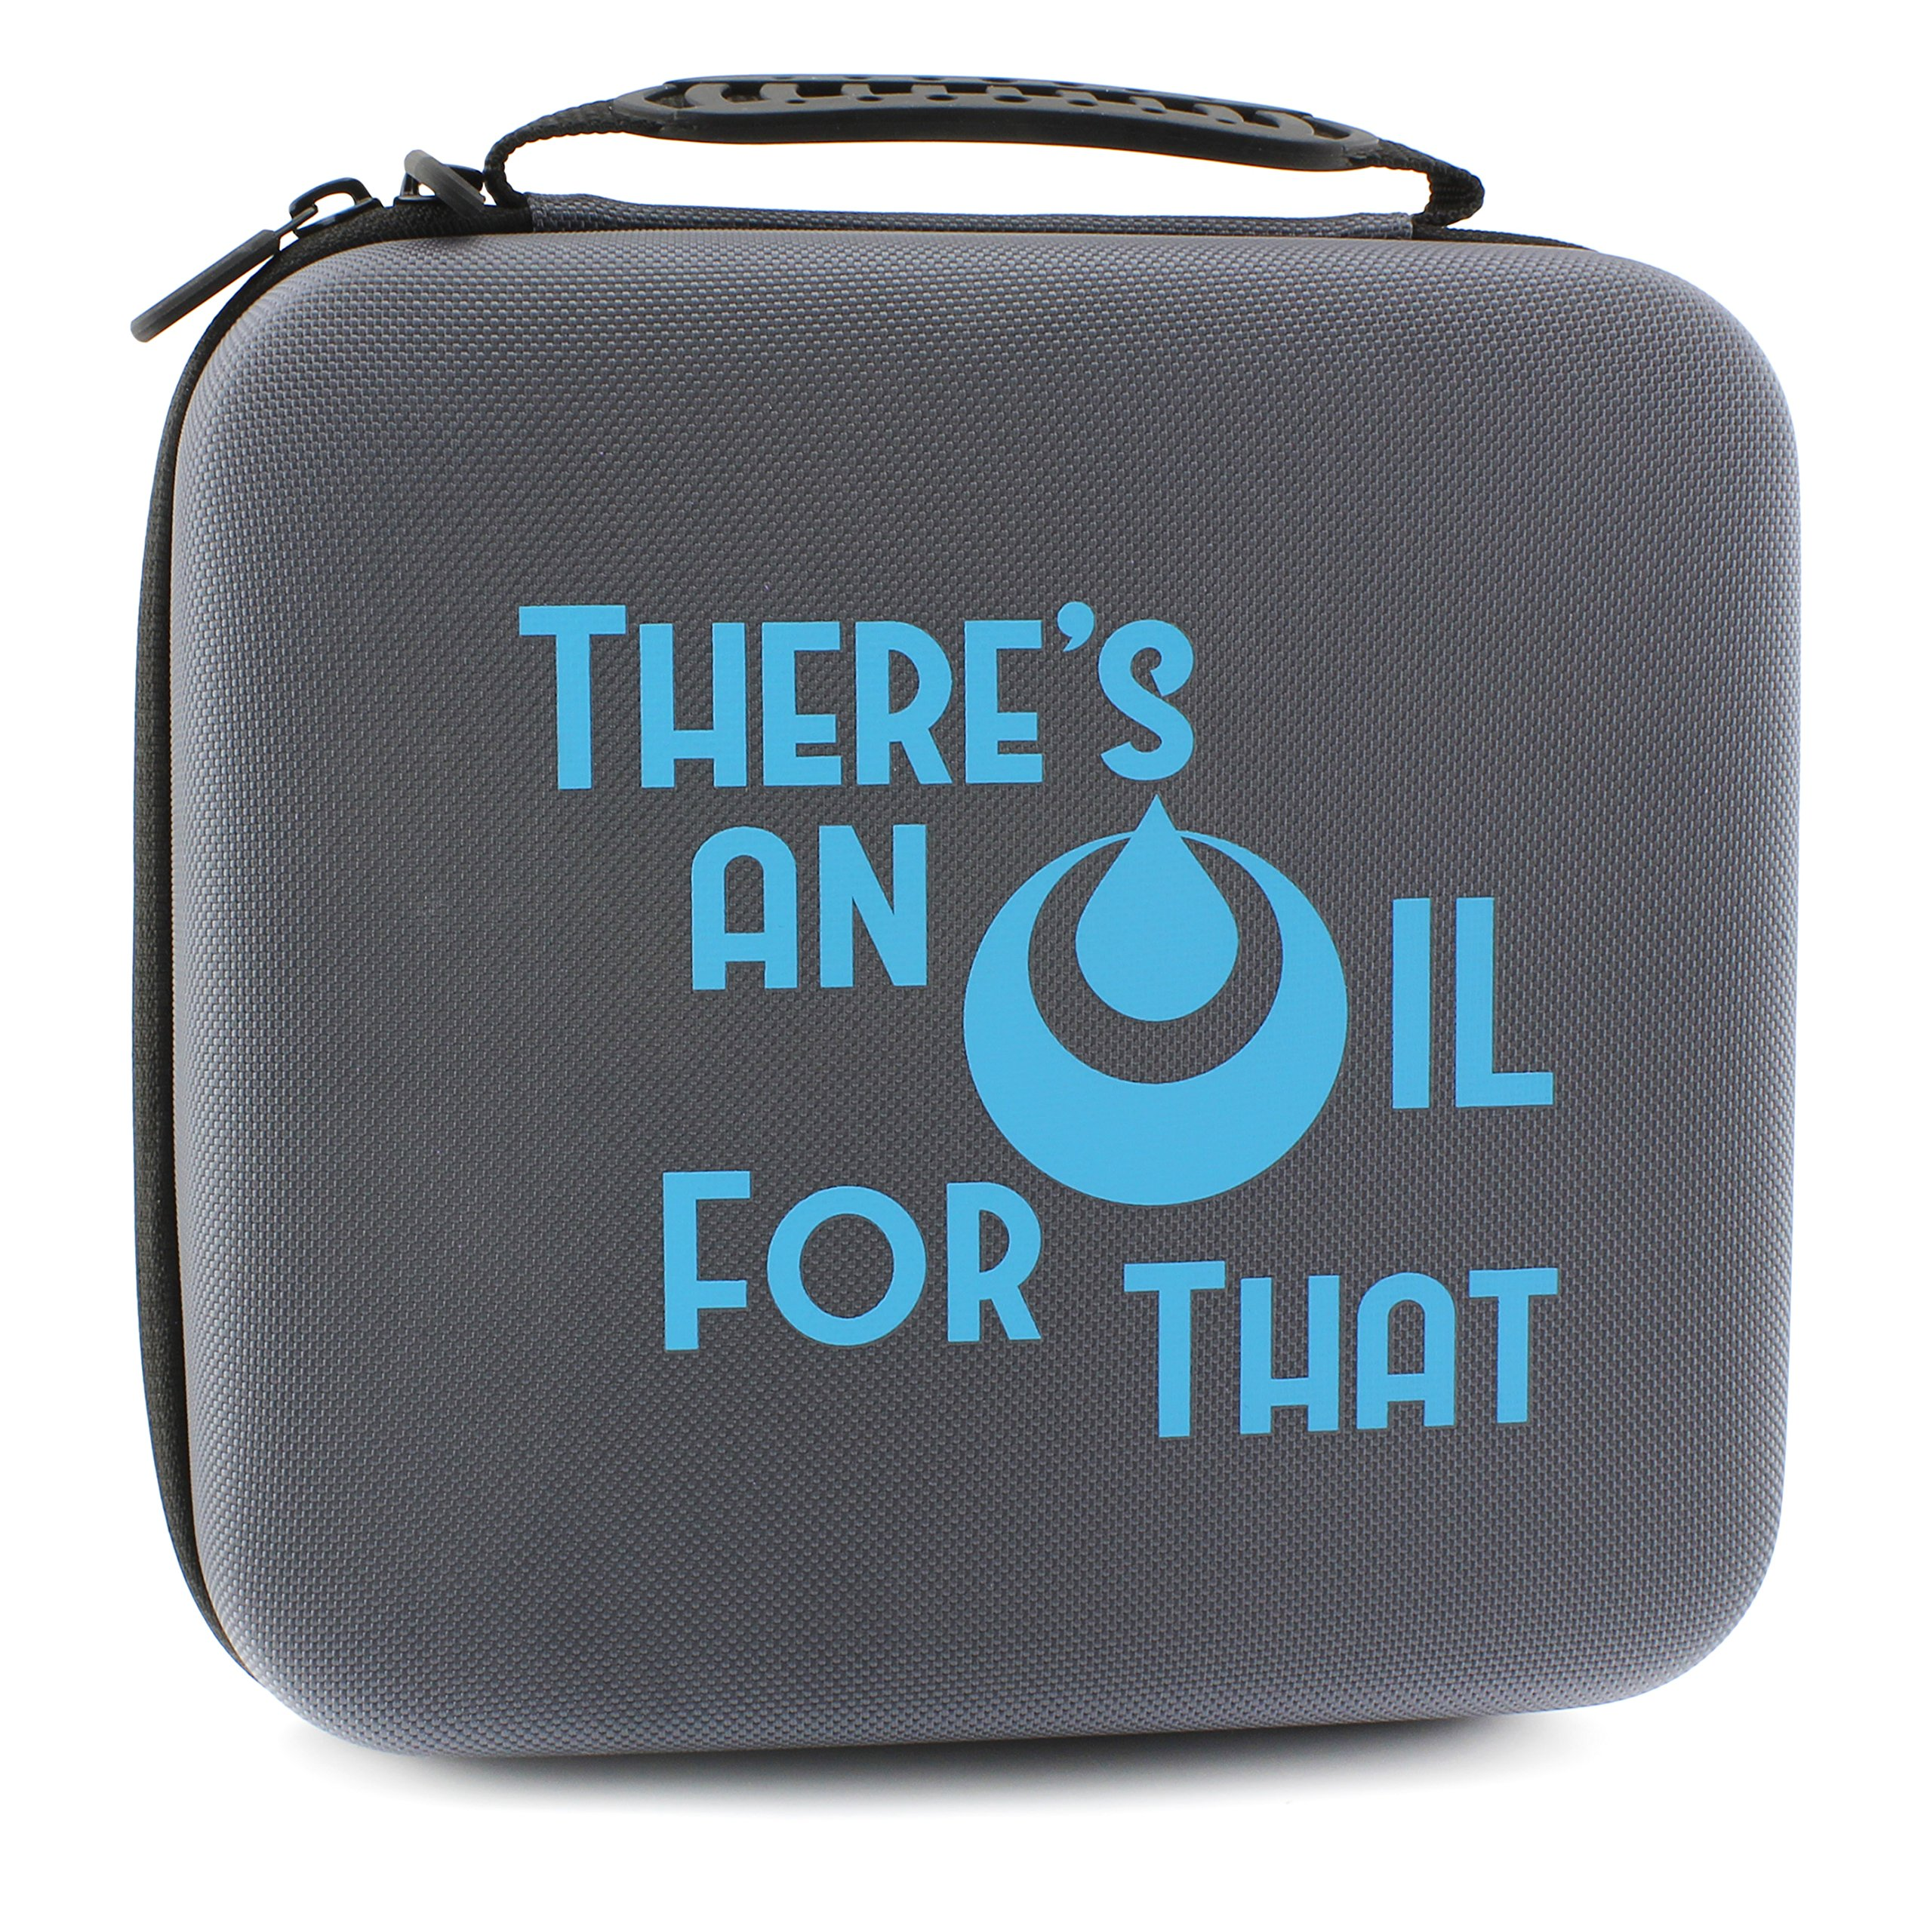 """""""THERE'S AN OIL FOR THAT"""" Essential Oil Carrying Case Holds 30 5ml/10ml/15ml Bottles; Gray Nylon Travel-Friendly Foam-Padded Aromatherapy Organizer w/Handle & Zipper"""